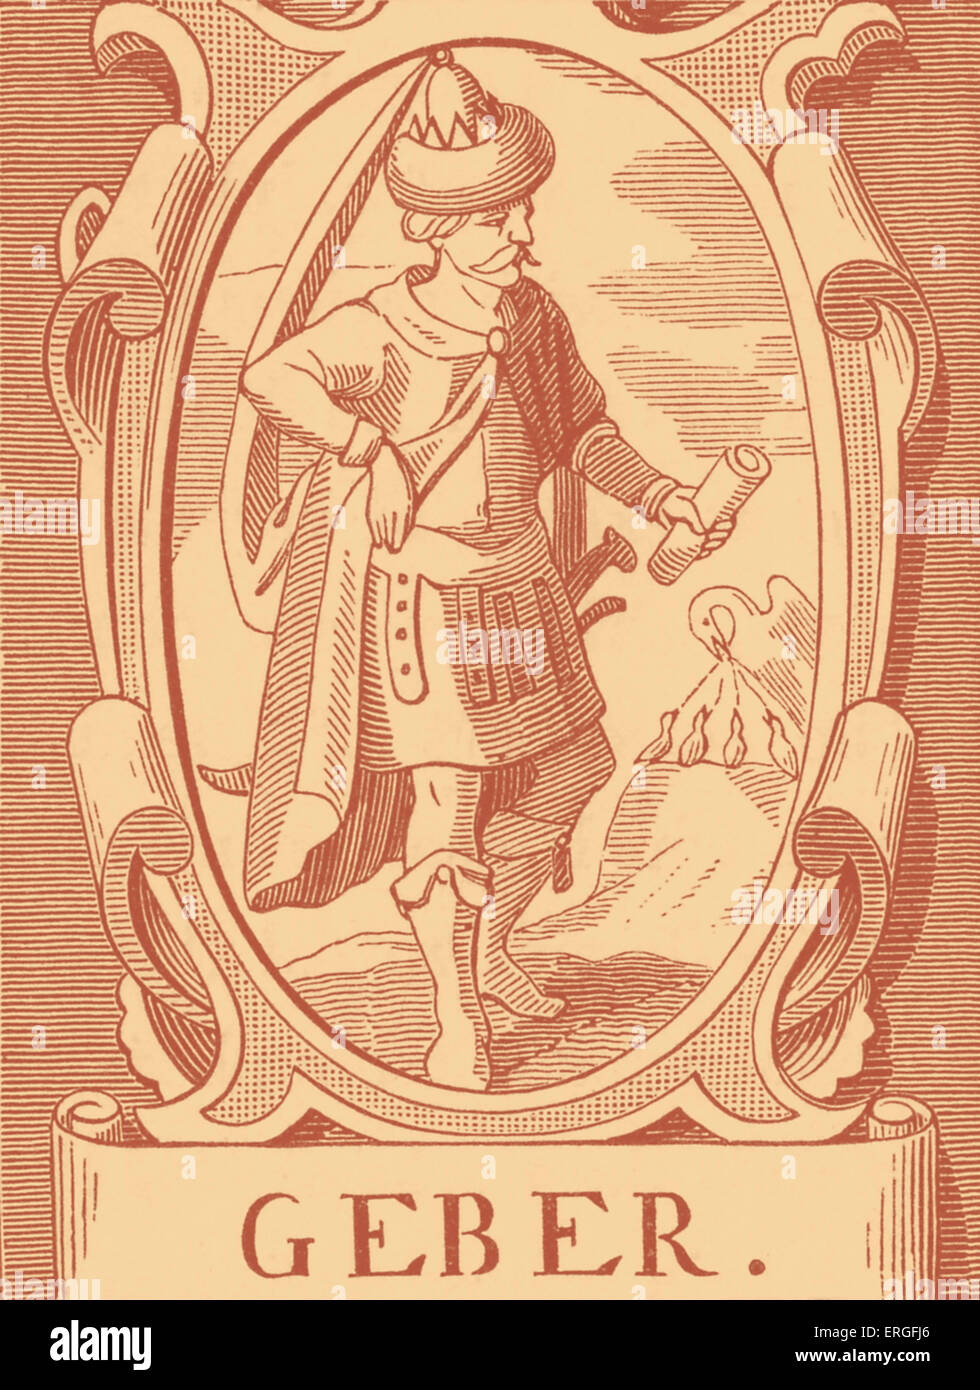 The Alchemist Geber - after engraving by Vriese. - Stock Image